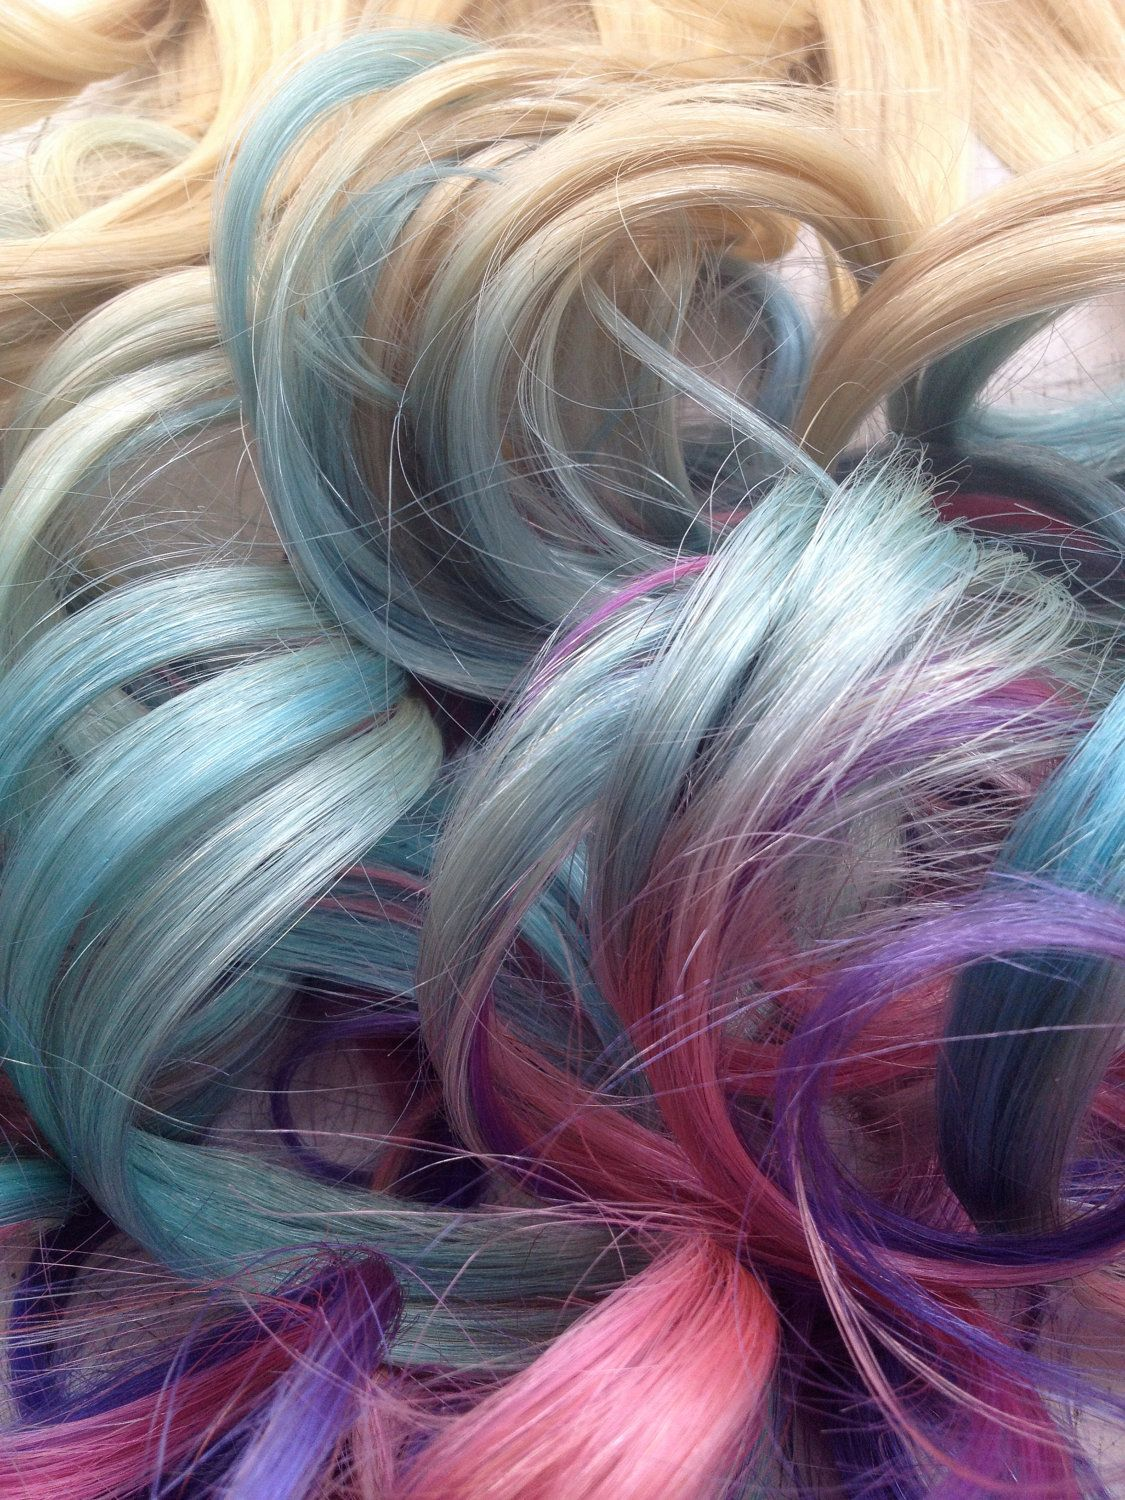 Pastel Tie Dye Hair Extensions Blonde Hair Dipped In Blue Pink And